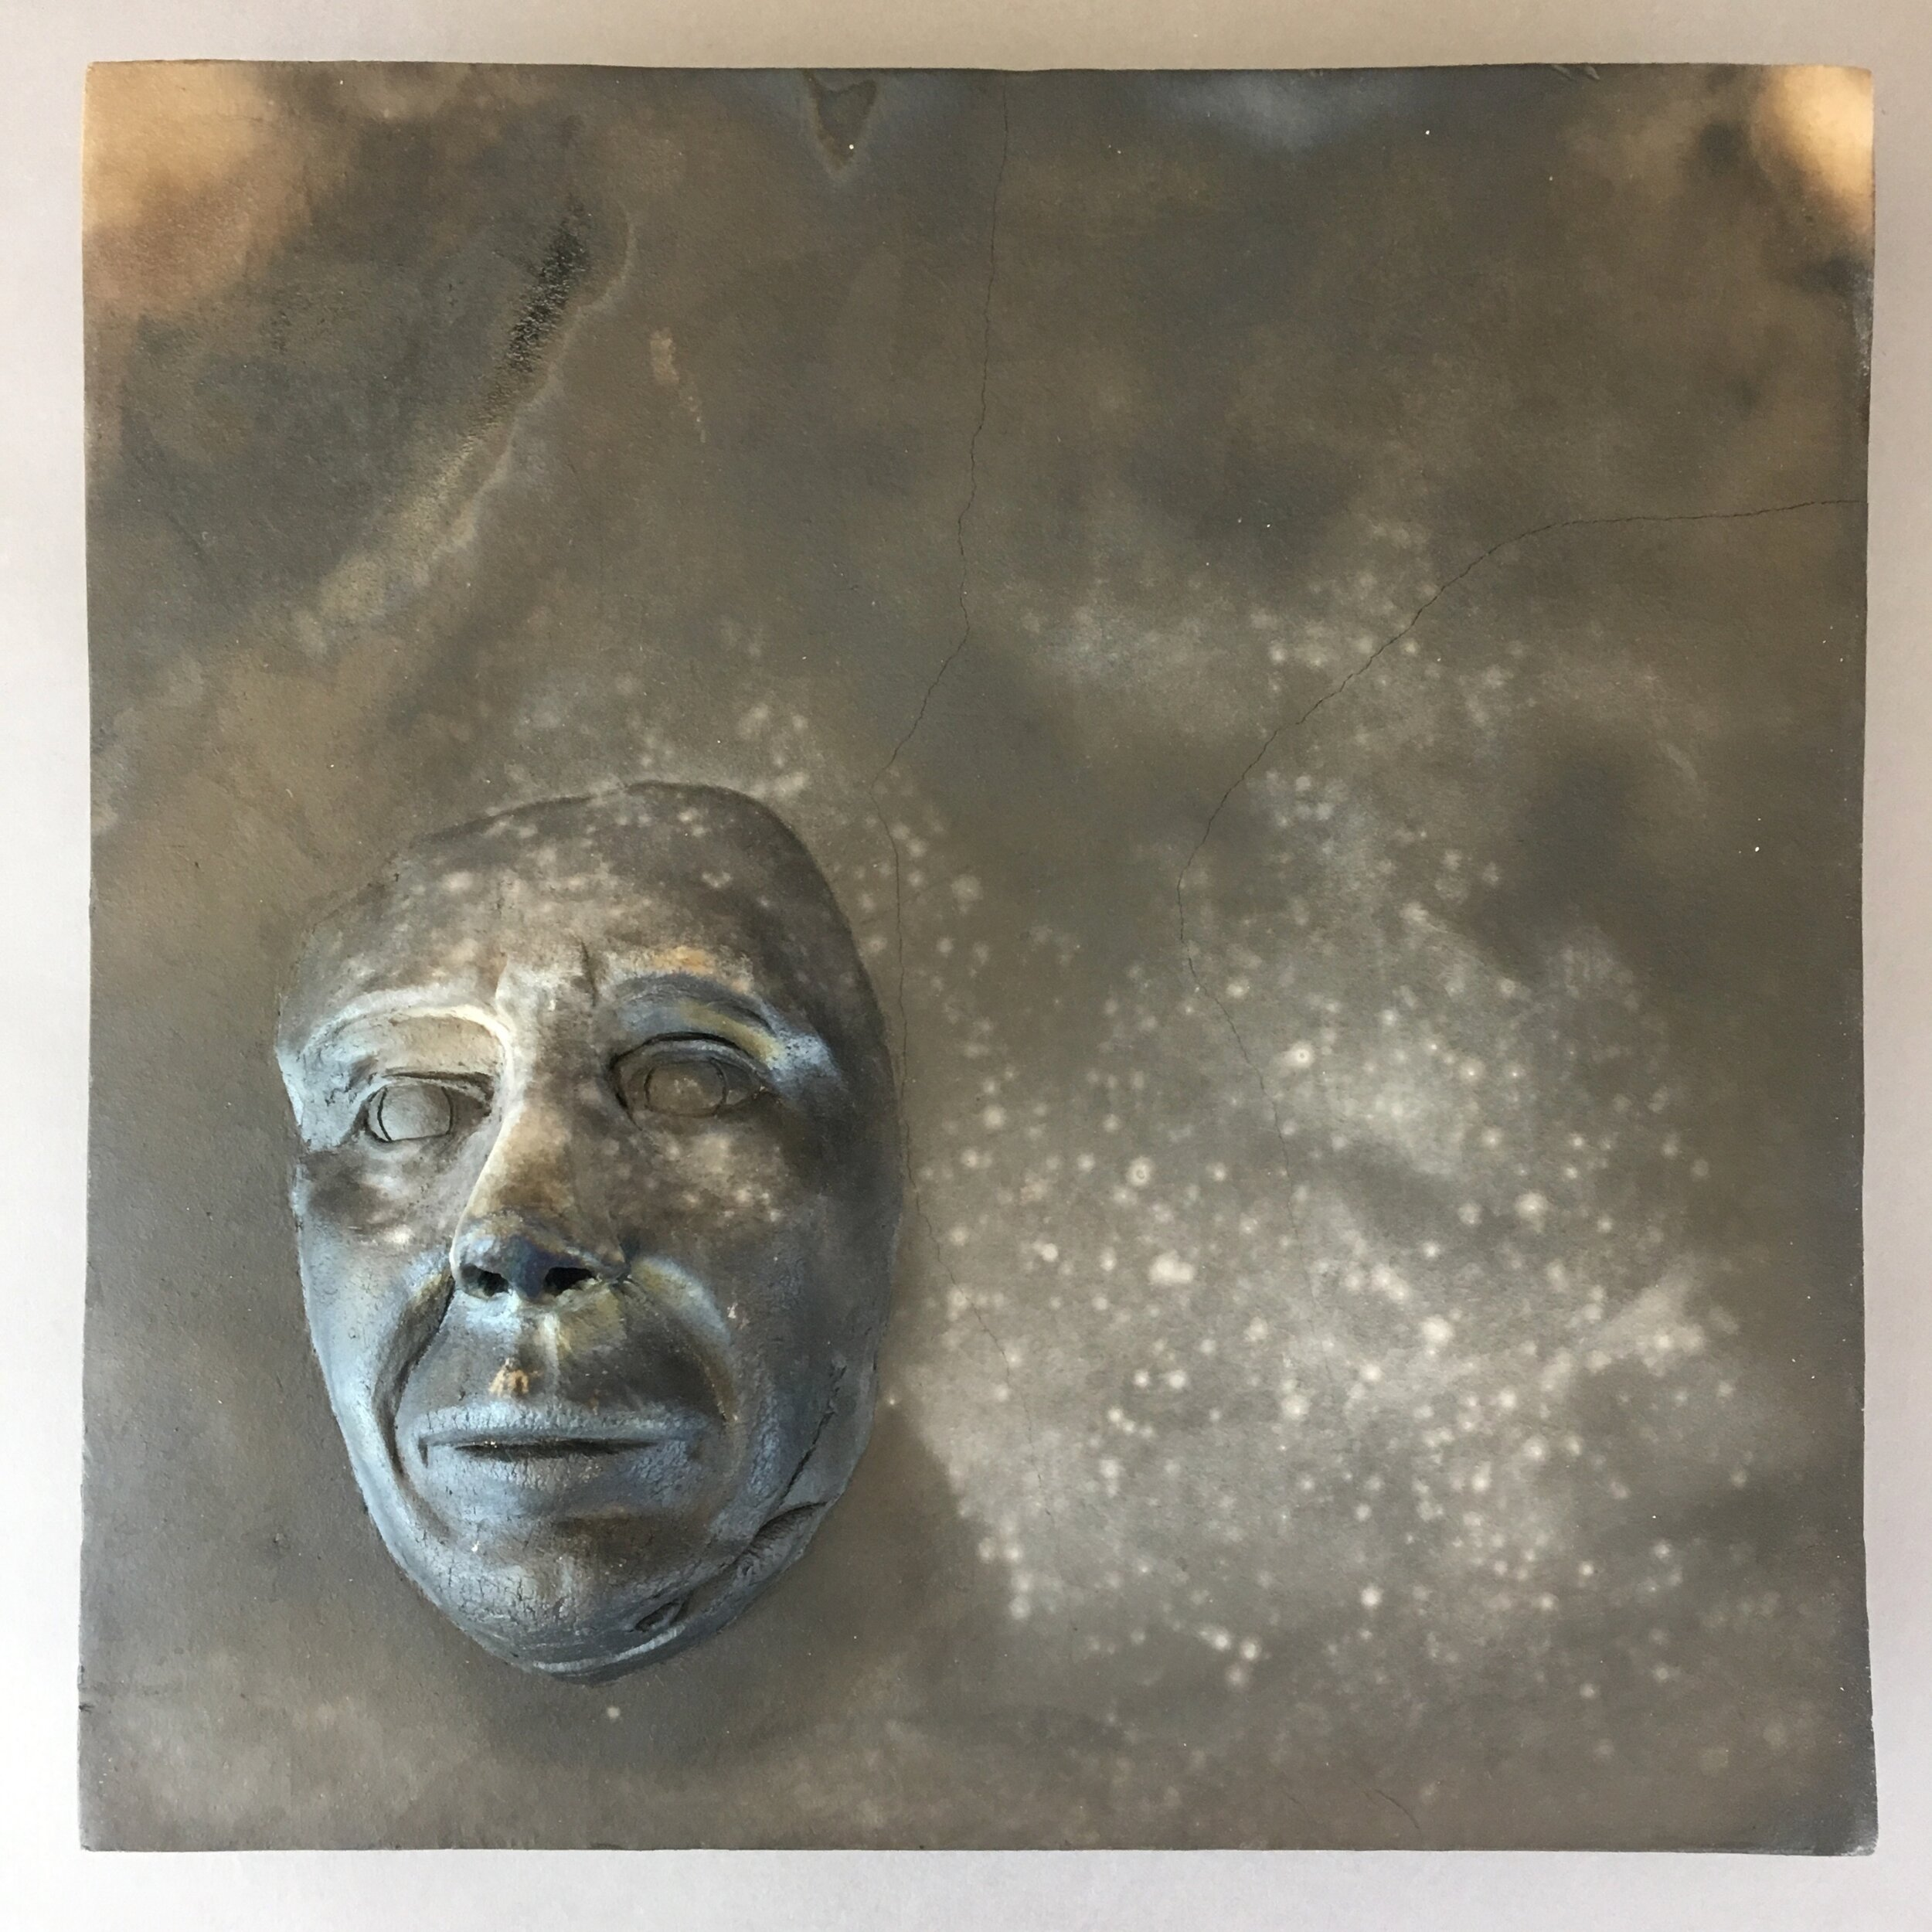 """Becoming  (panel 4 of 15)   Pit-fired ceramic on birch mounts  11.5"""" x 11.5"""" x variable thickness  Relief panels: $400 each  Flat panels: $75 each  Complete set: $4500  Click image to enlarge ⦿  Inquire"""